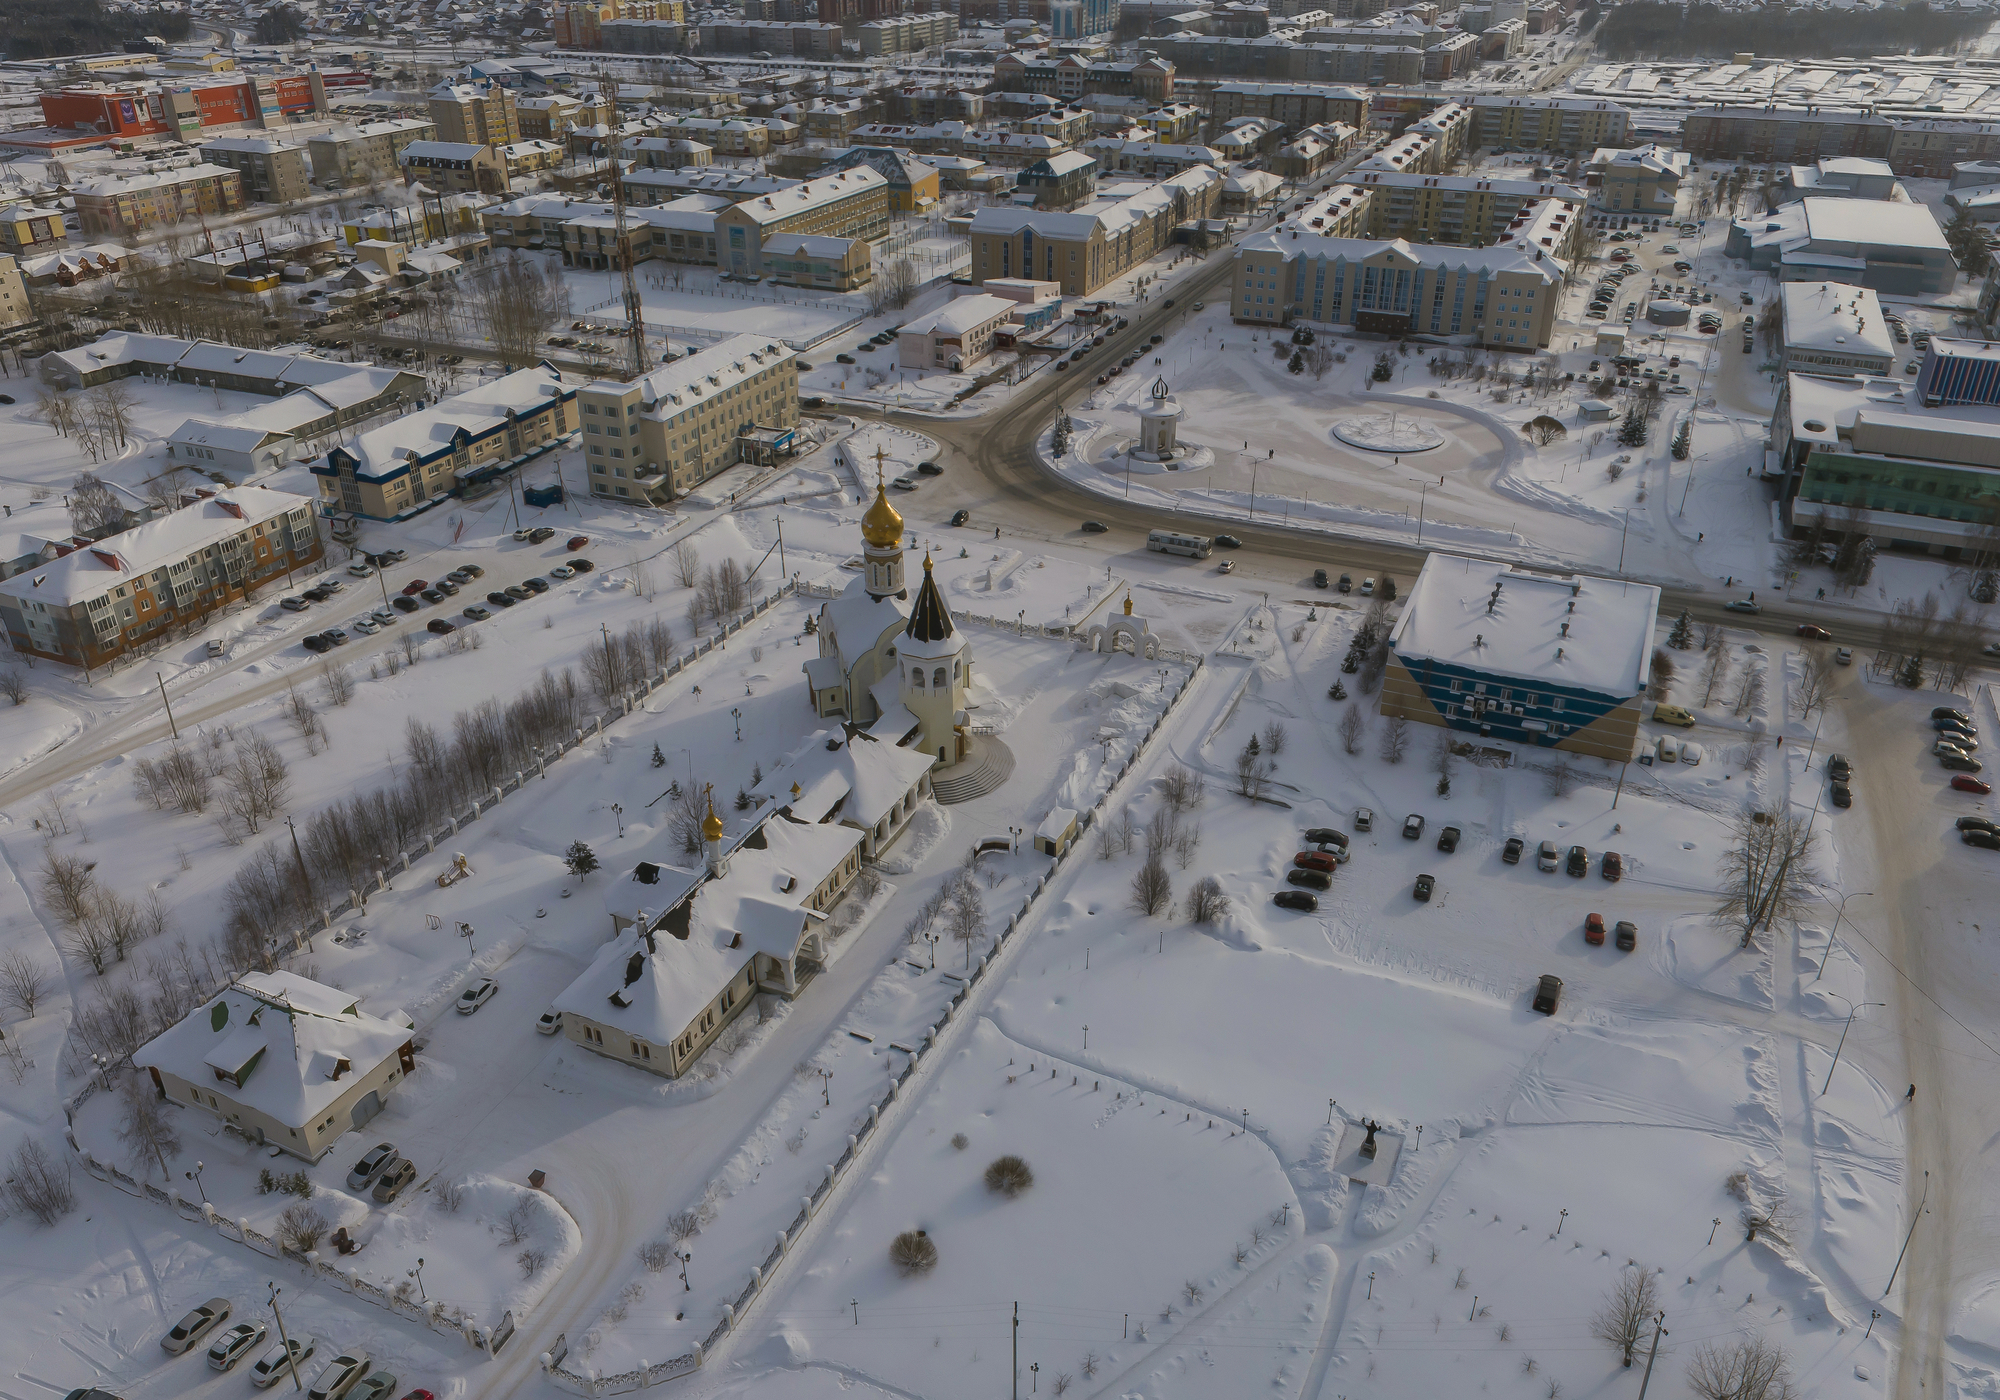 Church and city administration building  in Yugorsk city. Aerial. Winter, snow, cloudy. Khanty Mansiysk Autonomous Okrug (HMAO), Russia.